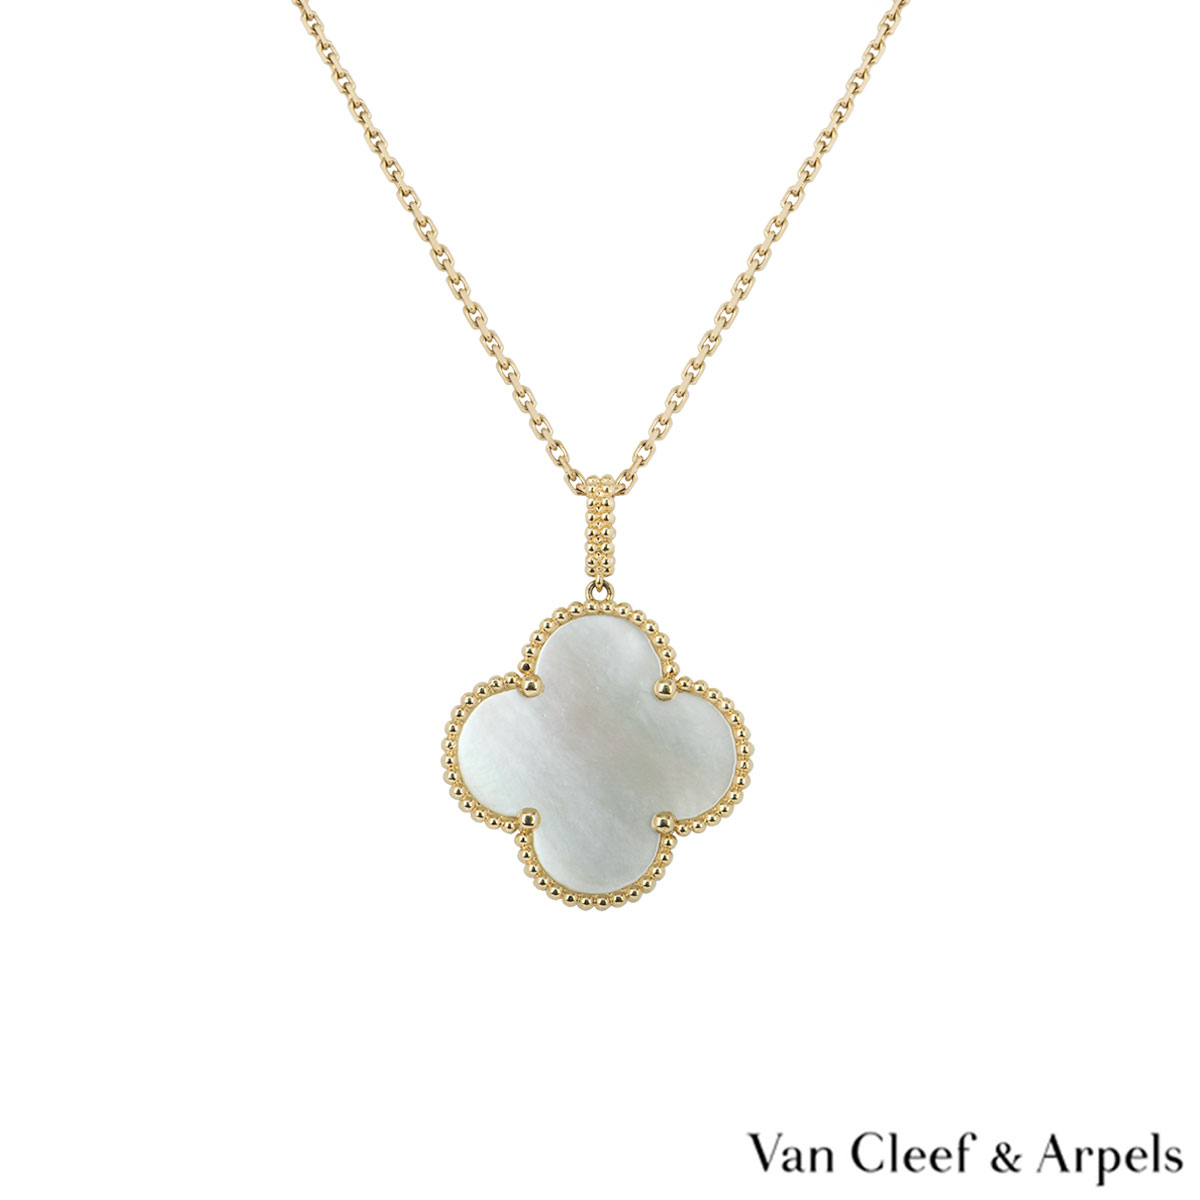 Van Cleef & Arpels Yellow Gold Pearl Magic Alhambra Necklace VCARO49L00